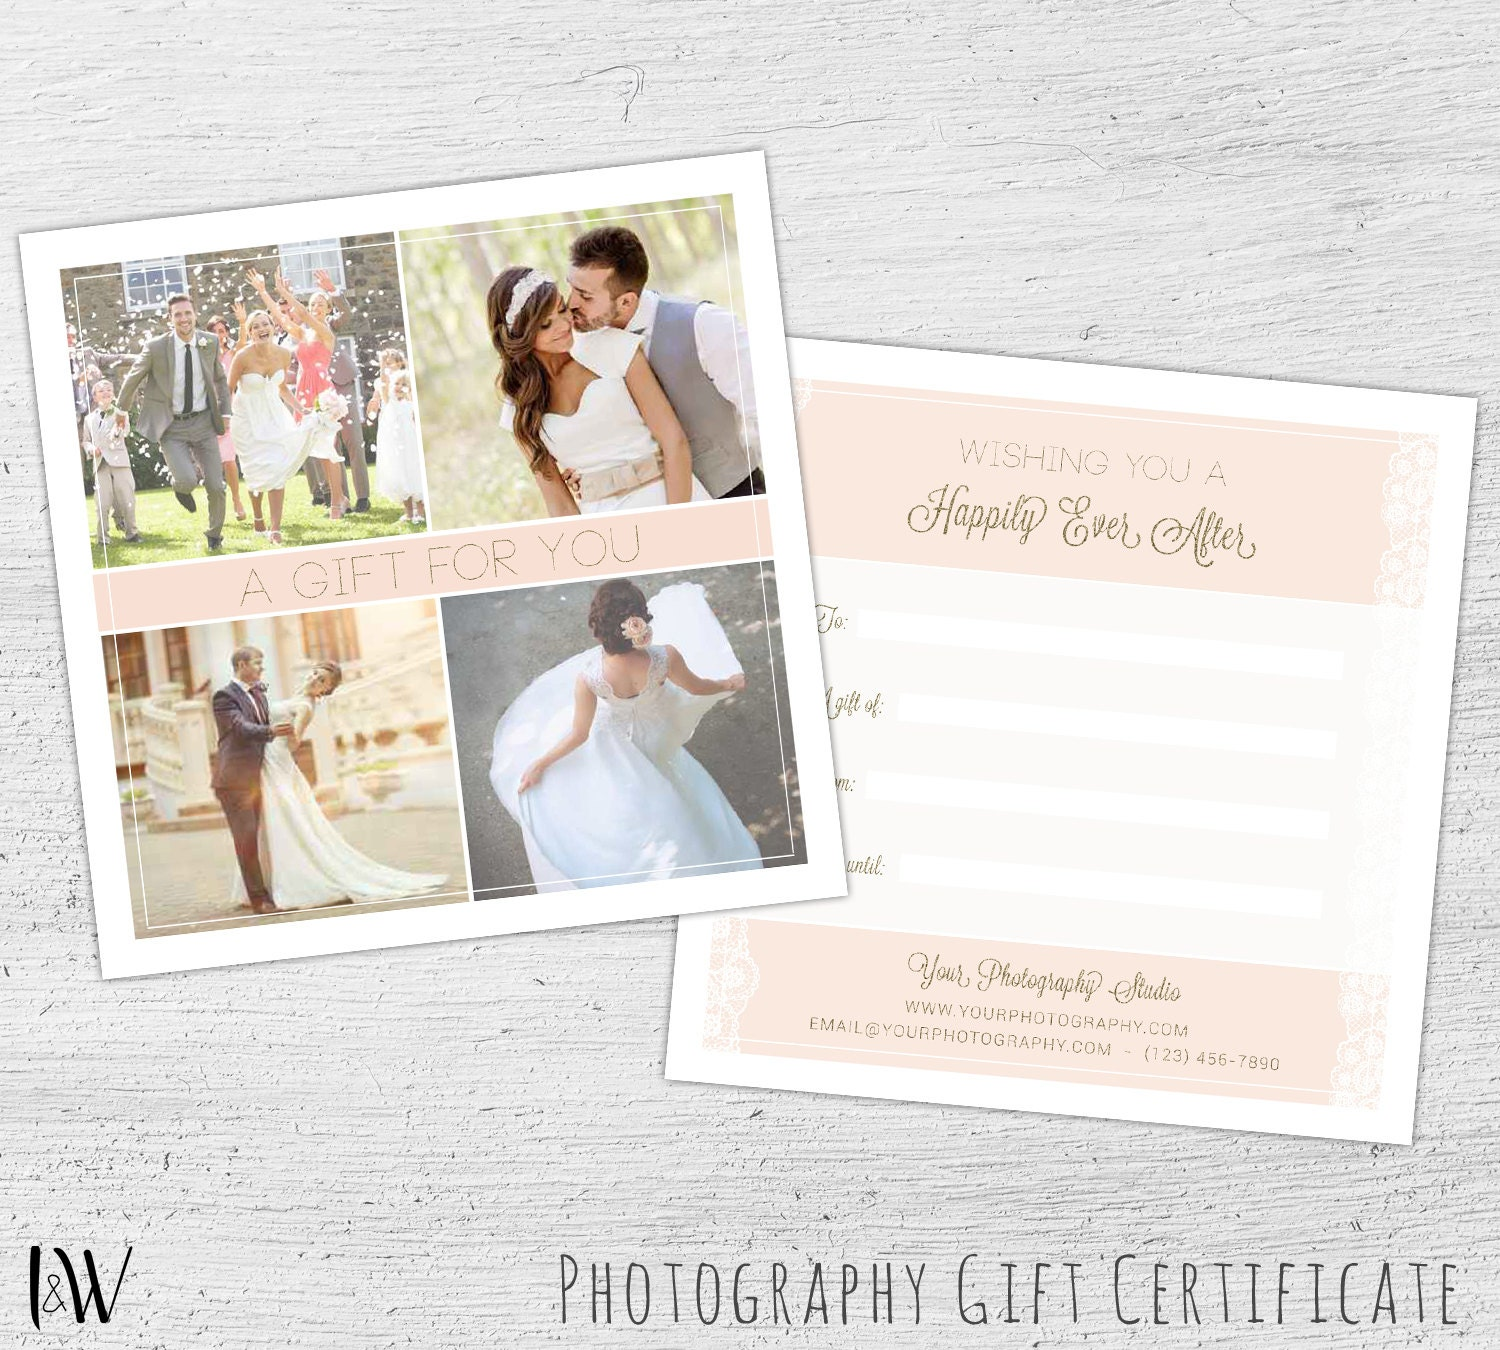 Photography Gift Certificate Wedding Photography Photoshop Etsy